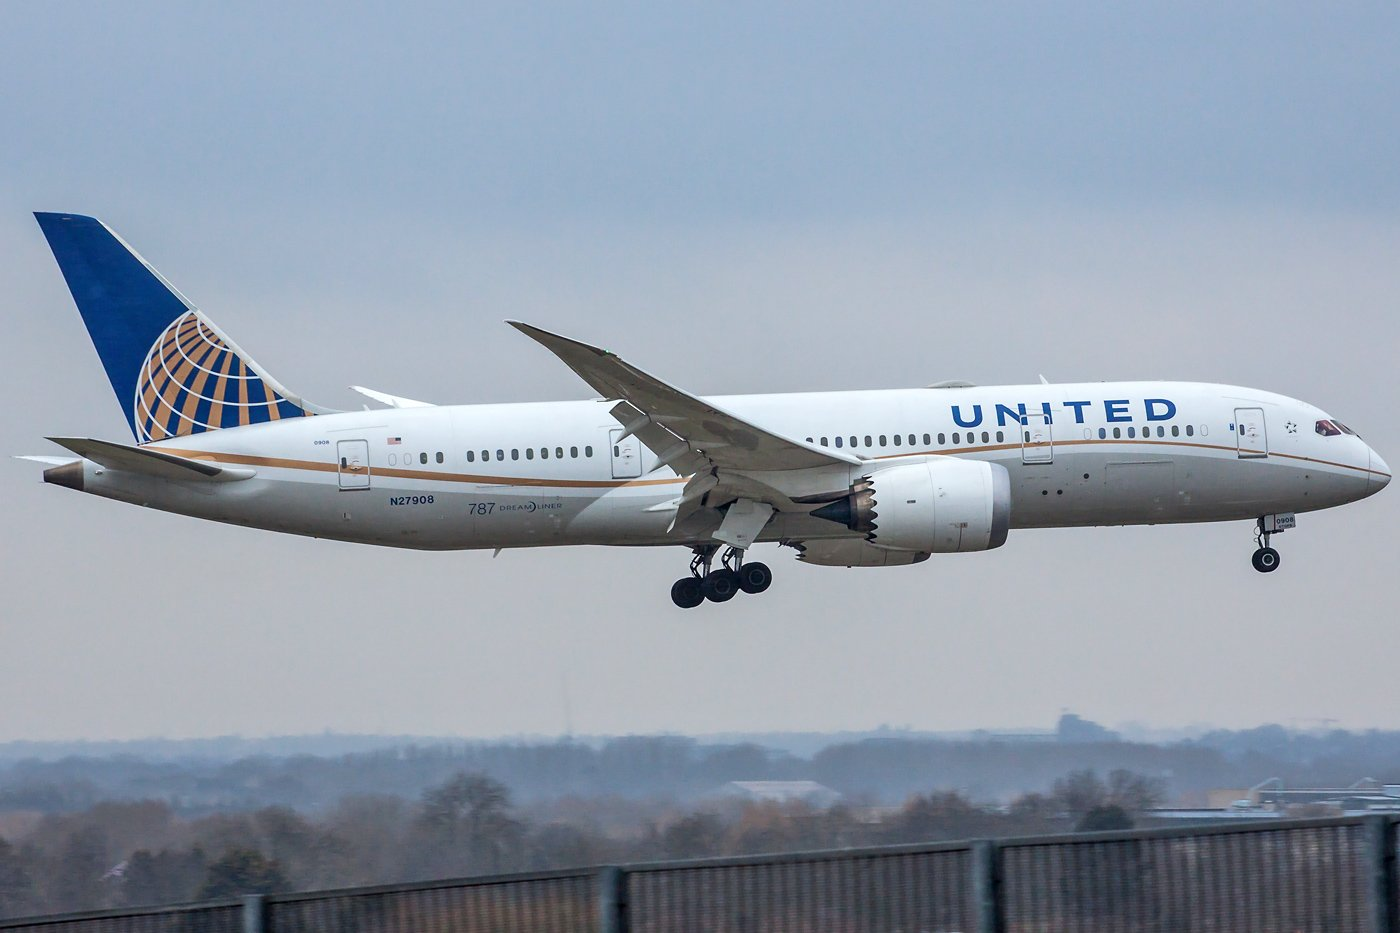 United Airlines Boeing 787-8 Dreamliner N27908